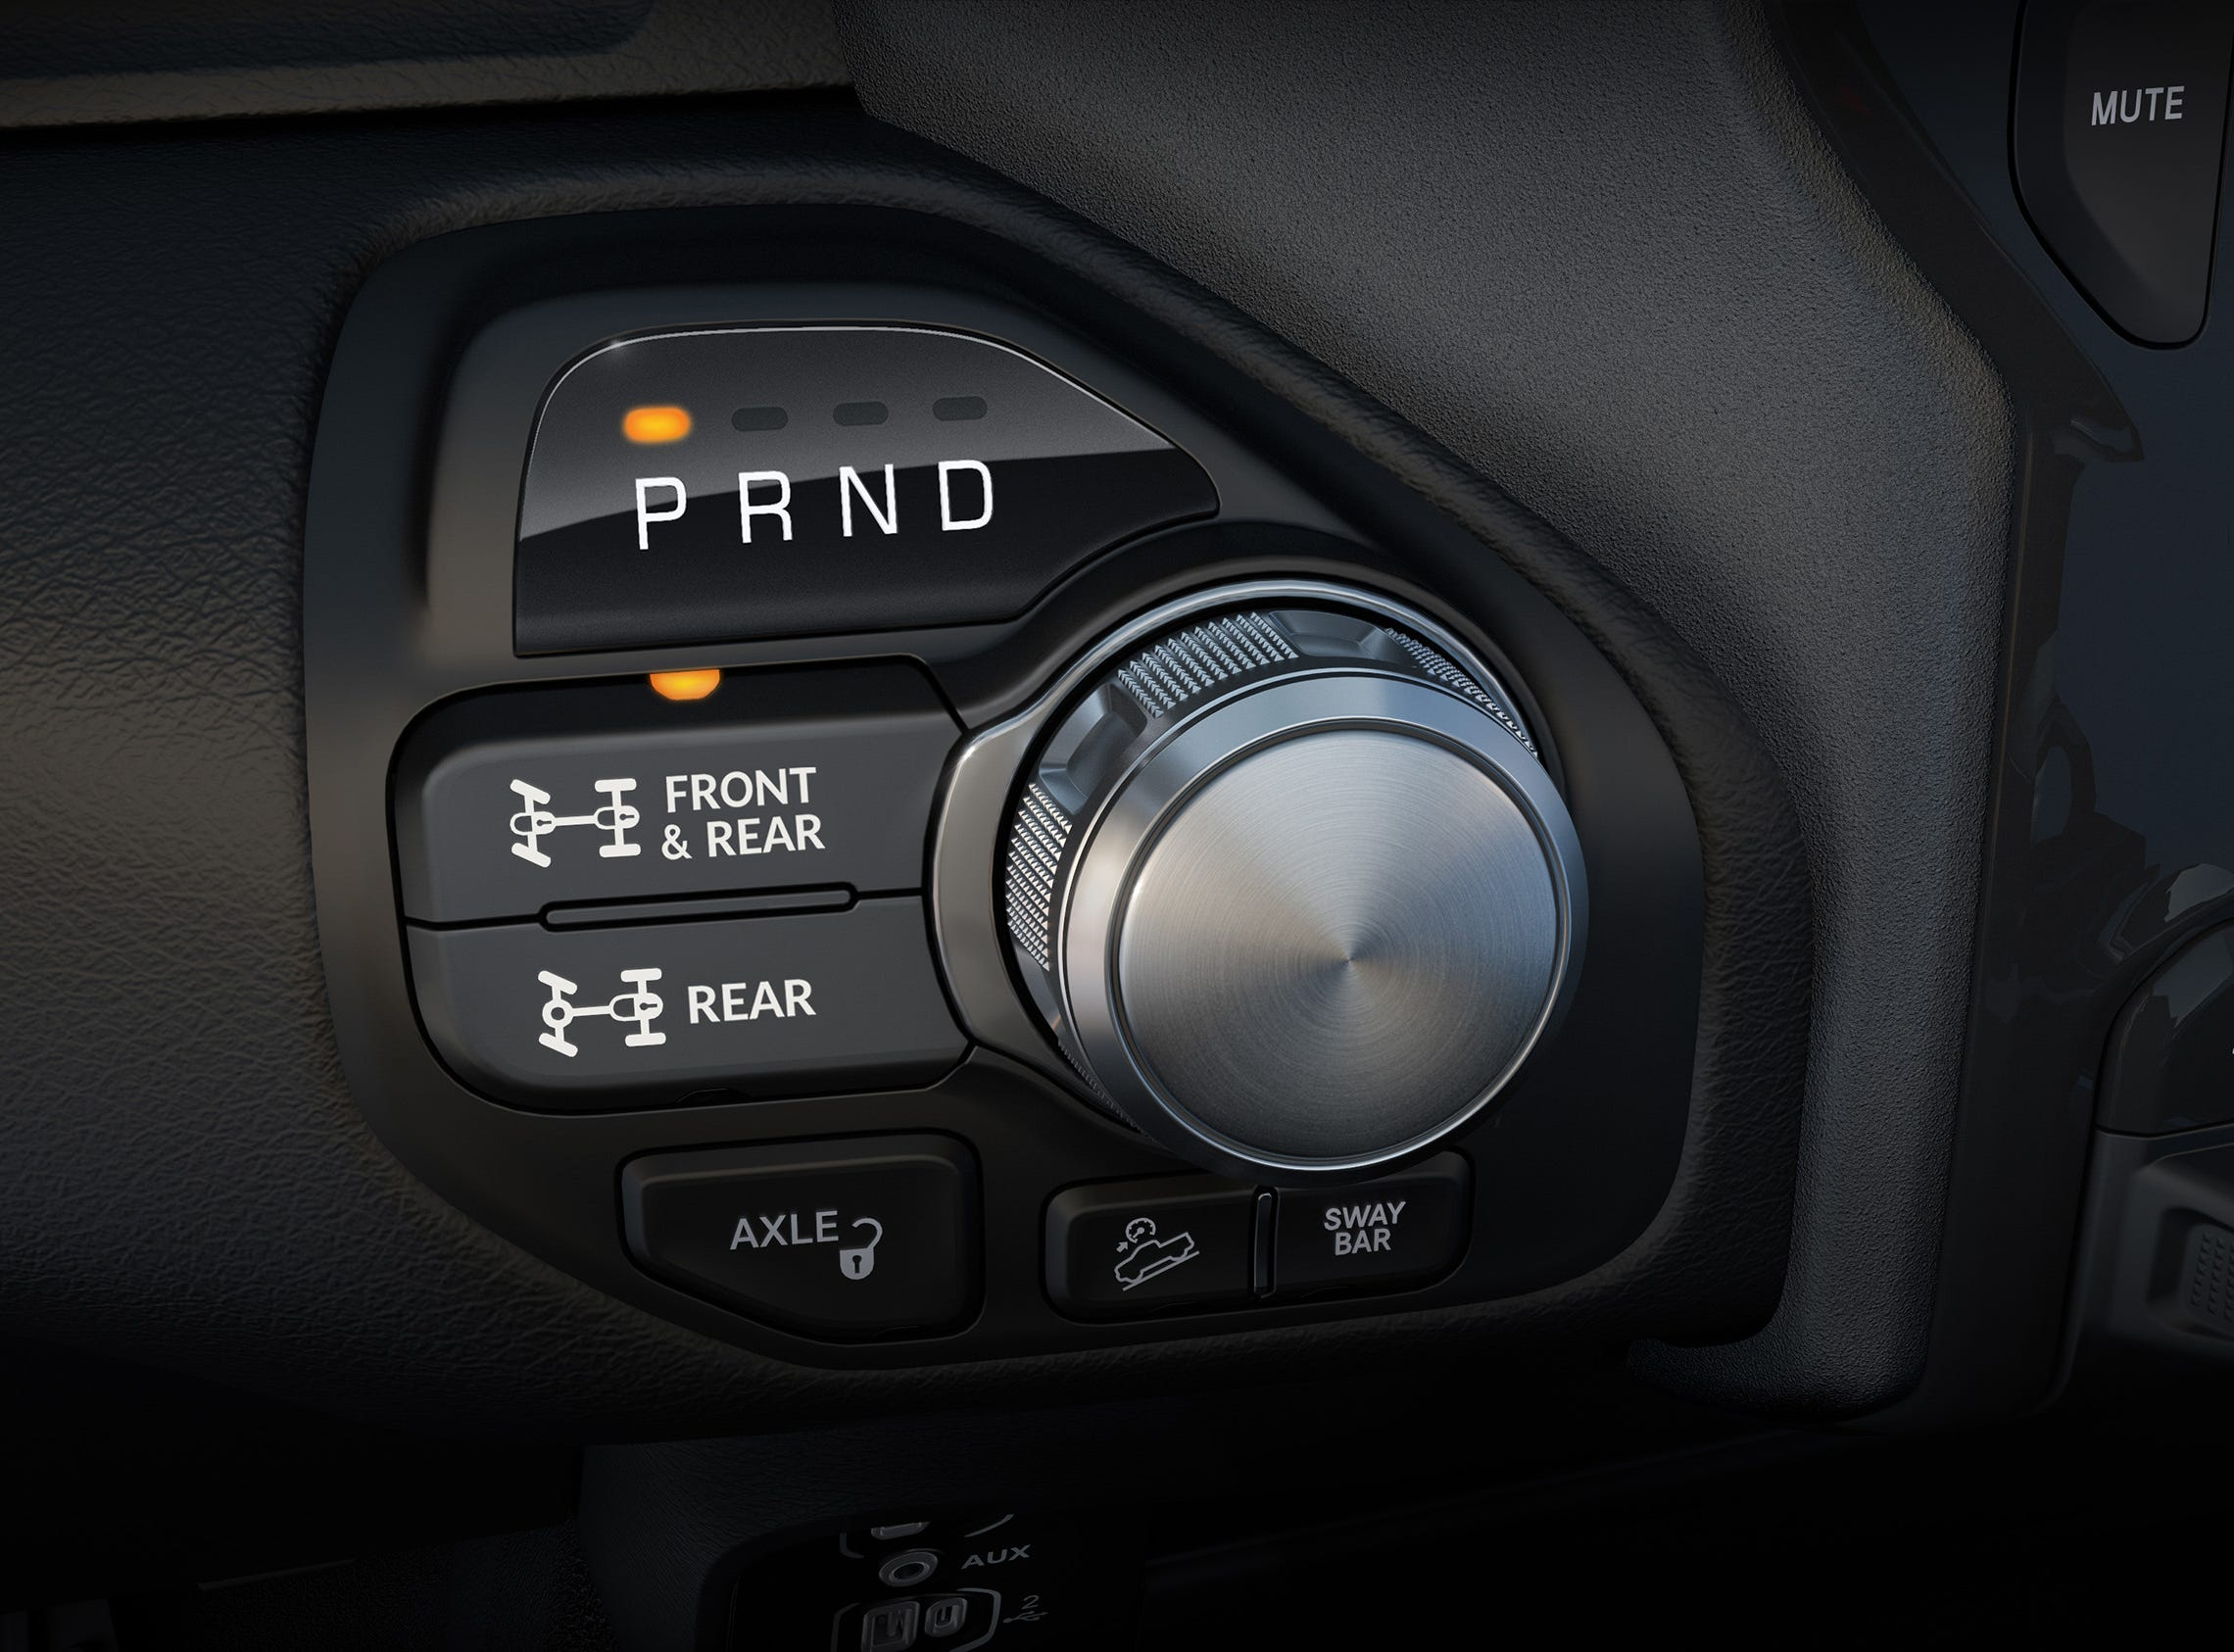 2019 Ram 2500 Power Wagon 8-speed rotary shifter with controls for off-road components